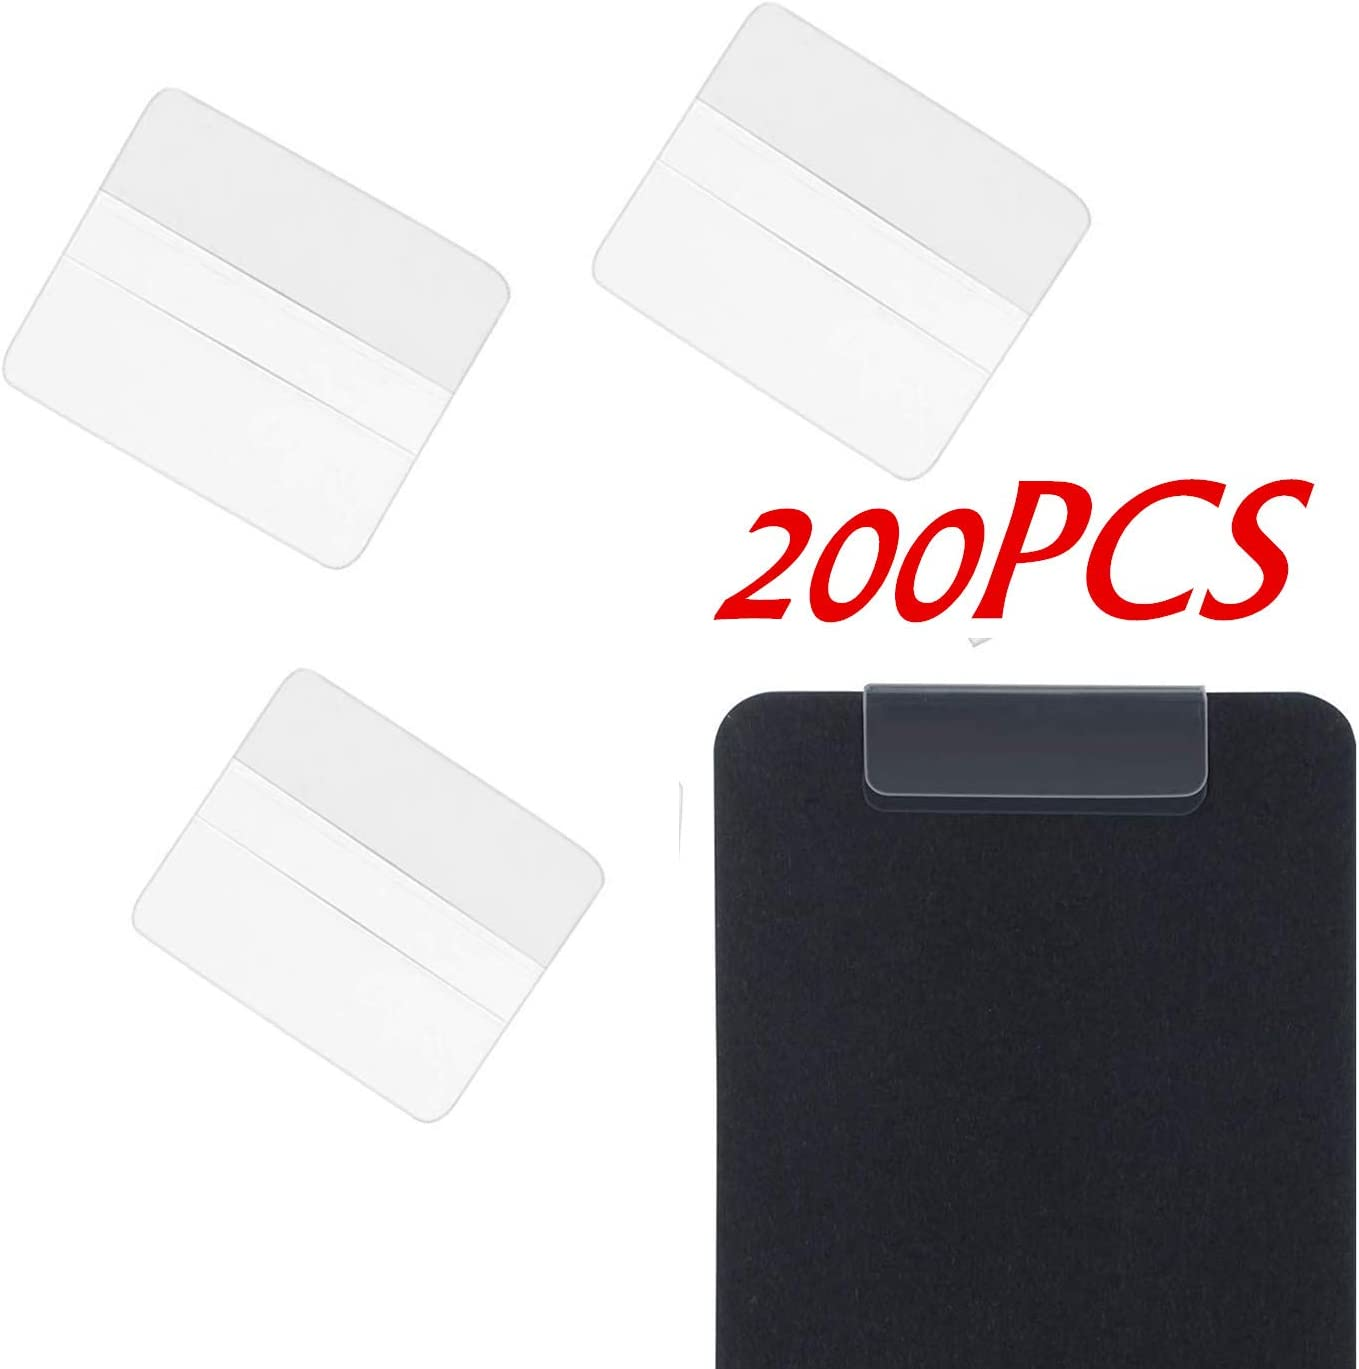 1 x 1 inch 150 Pieces Earring Card Adapter Self-Adhesive Lip Adapter Plastic Lip Hanger for Earring Necklace Card Display